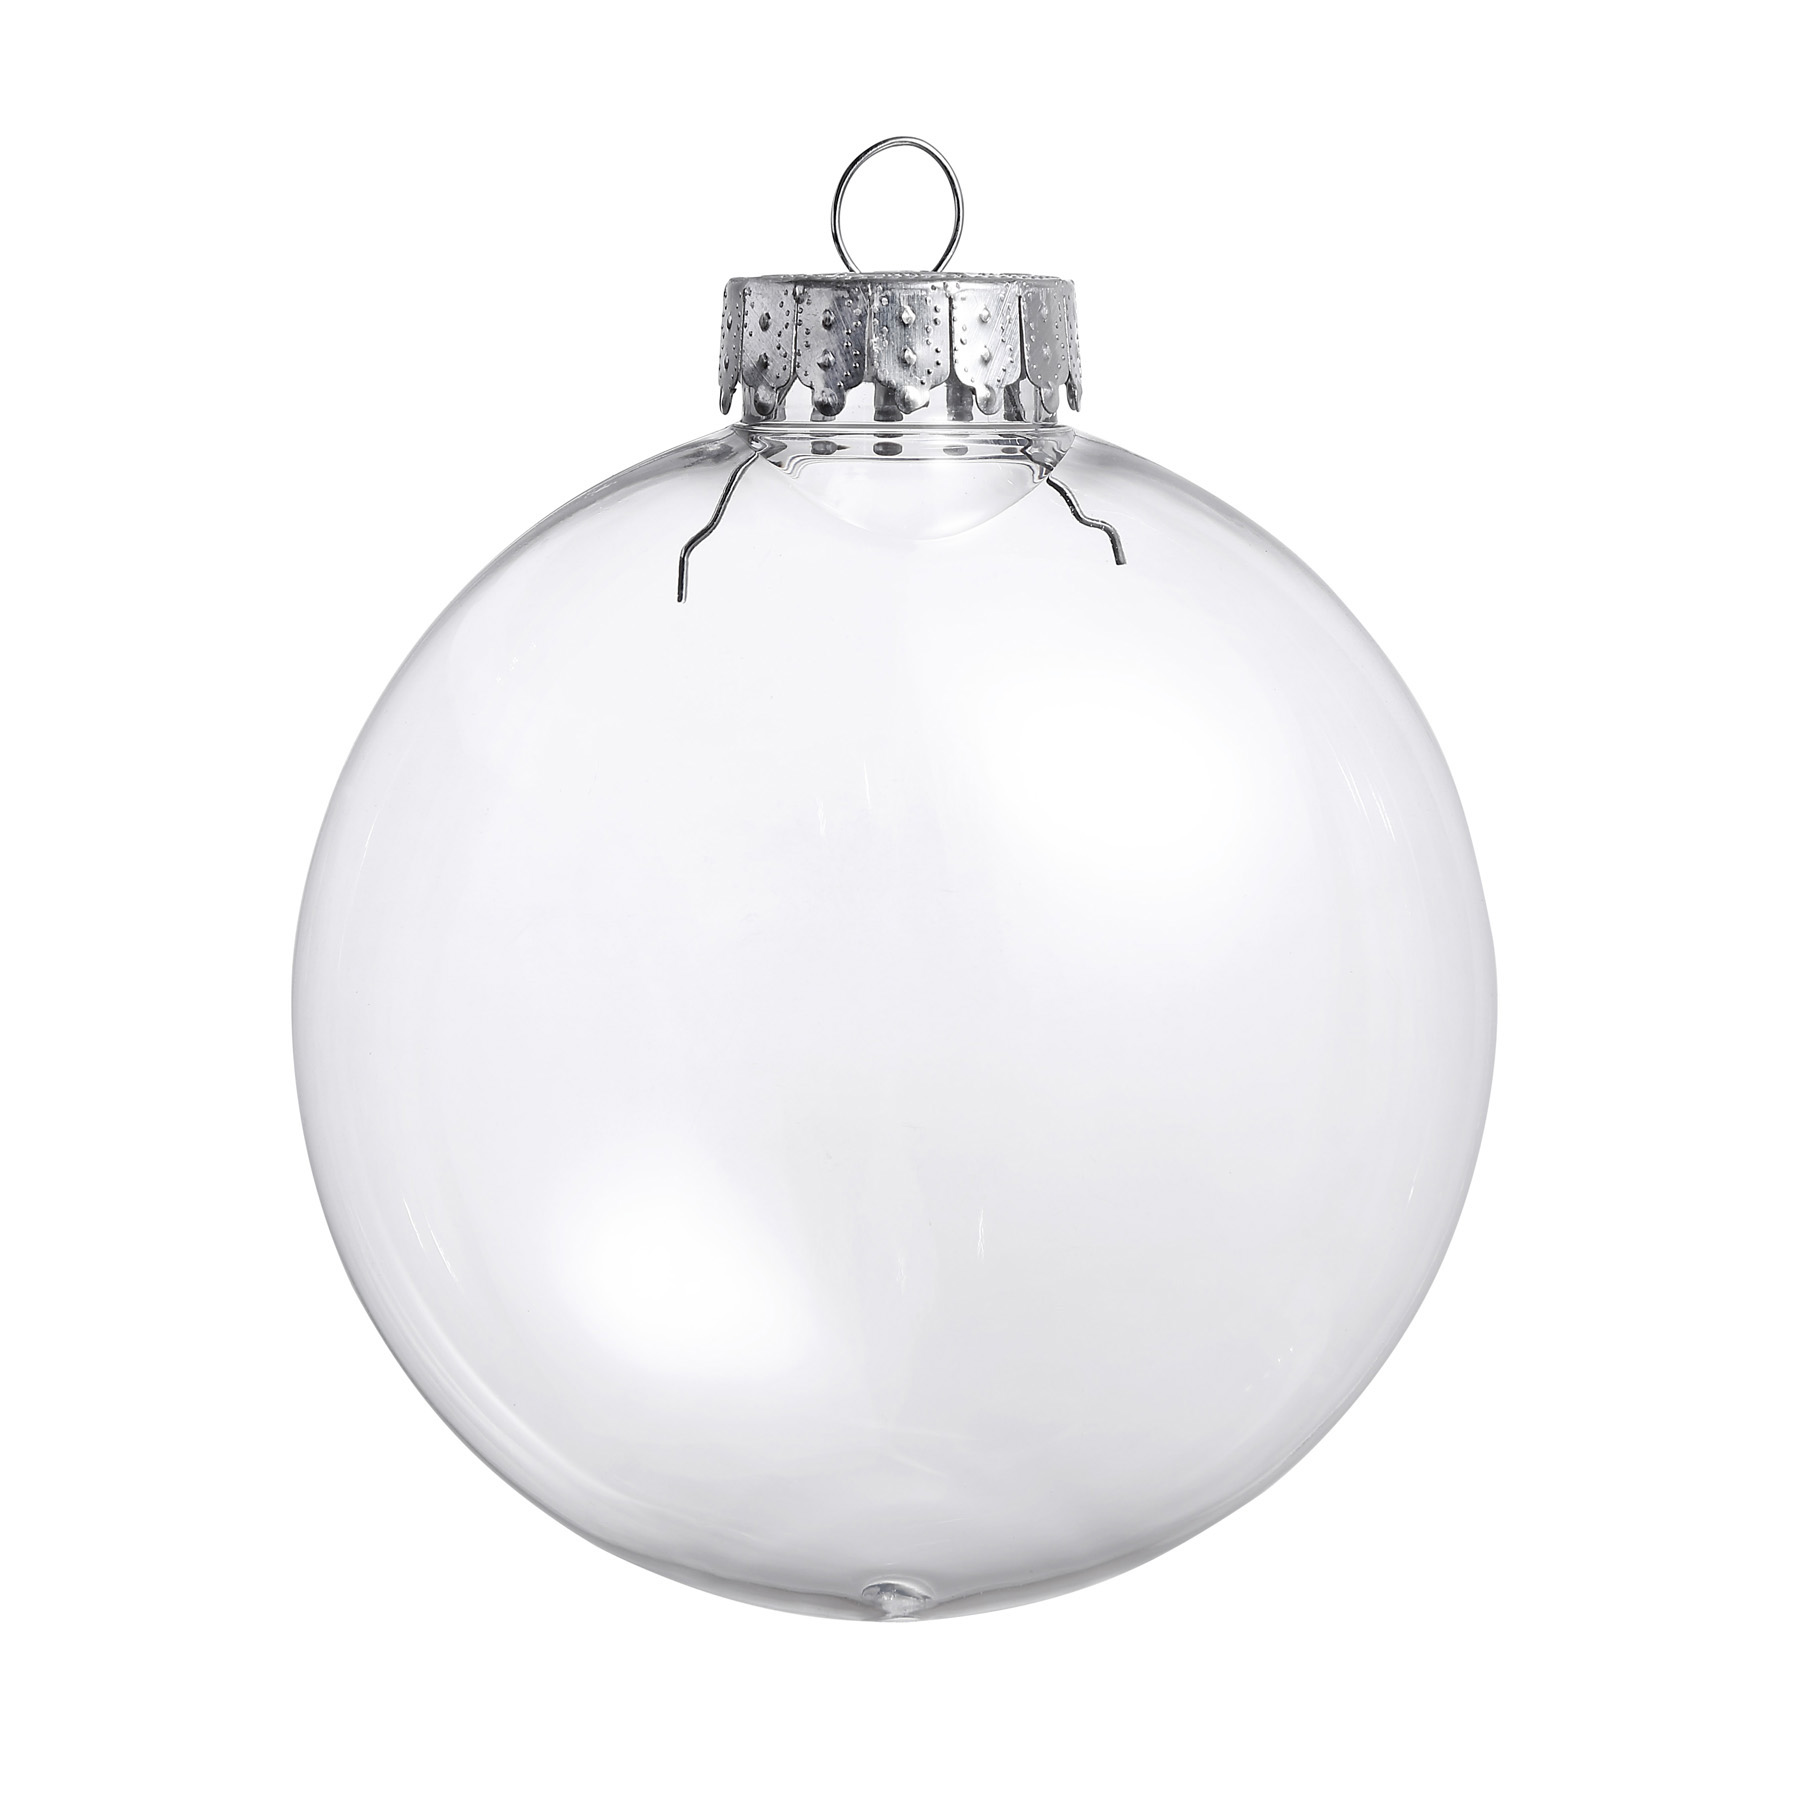 Buy the ct clear plastic disc ornaments by artminds™ at